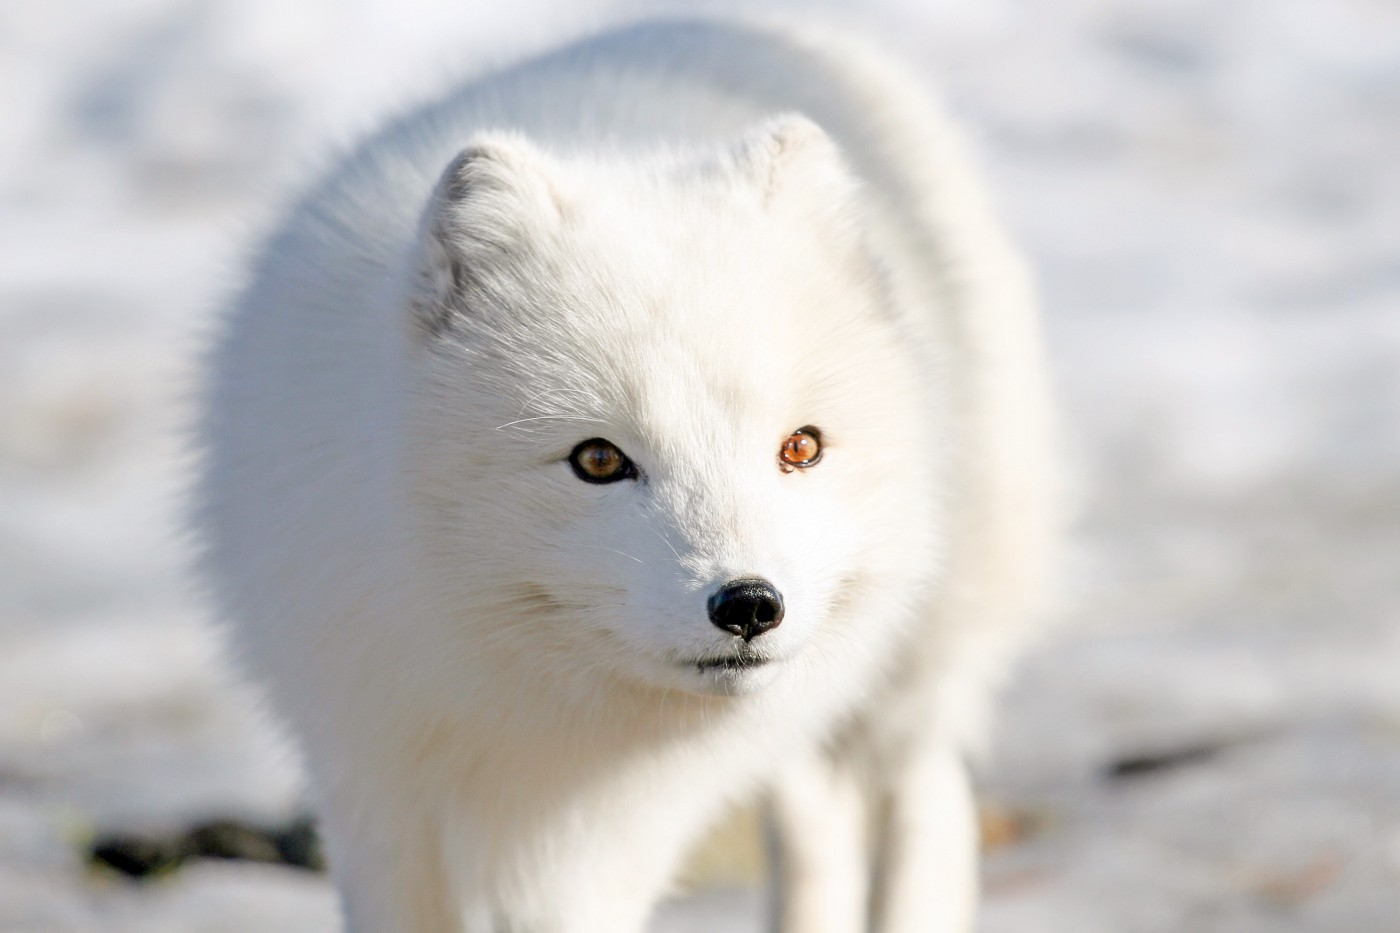 A pure white fox with short ears and golden eyes.